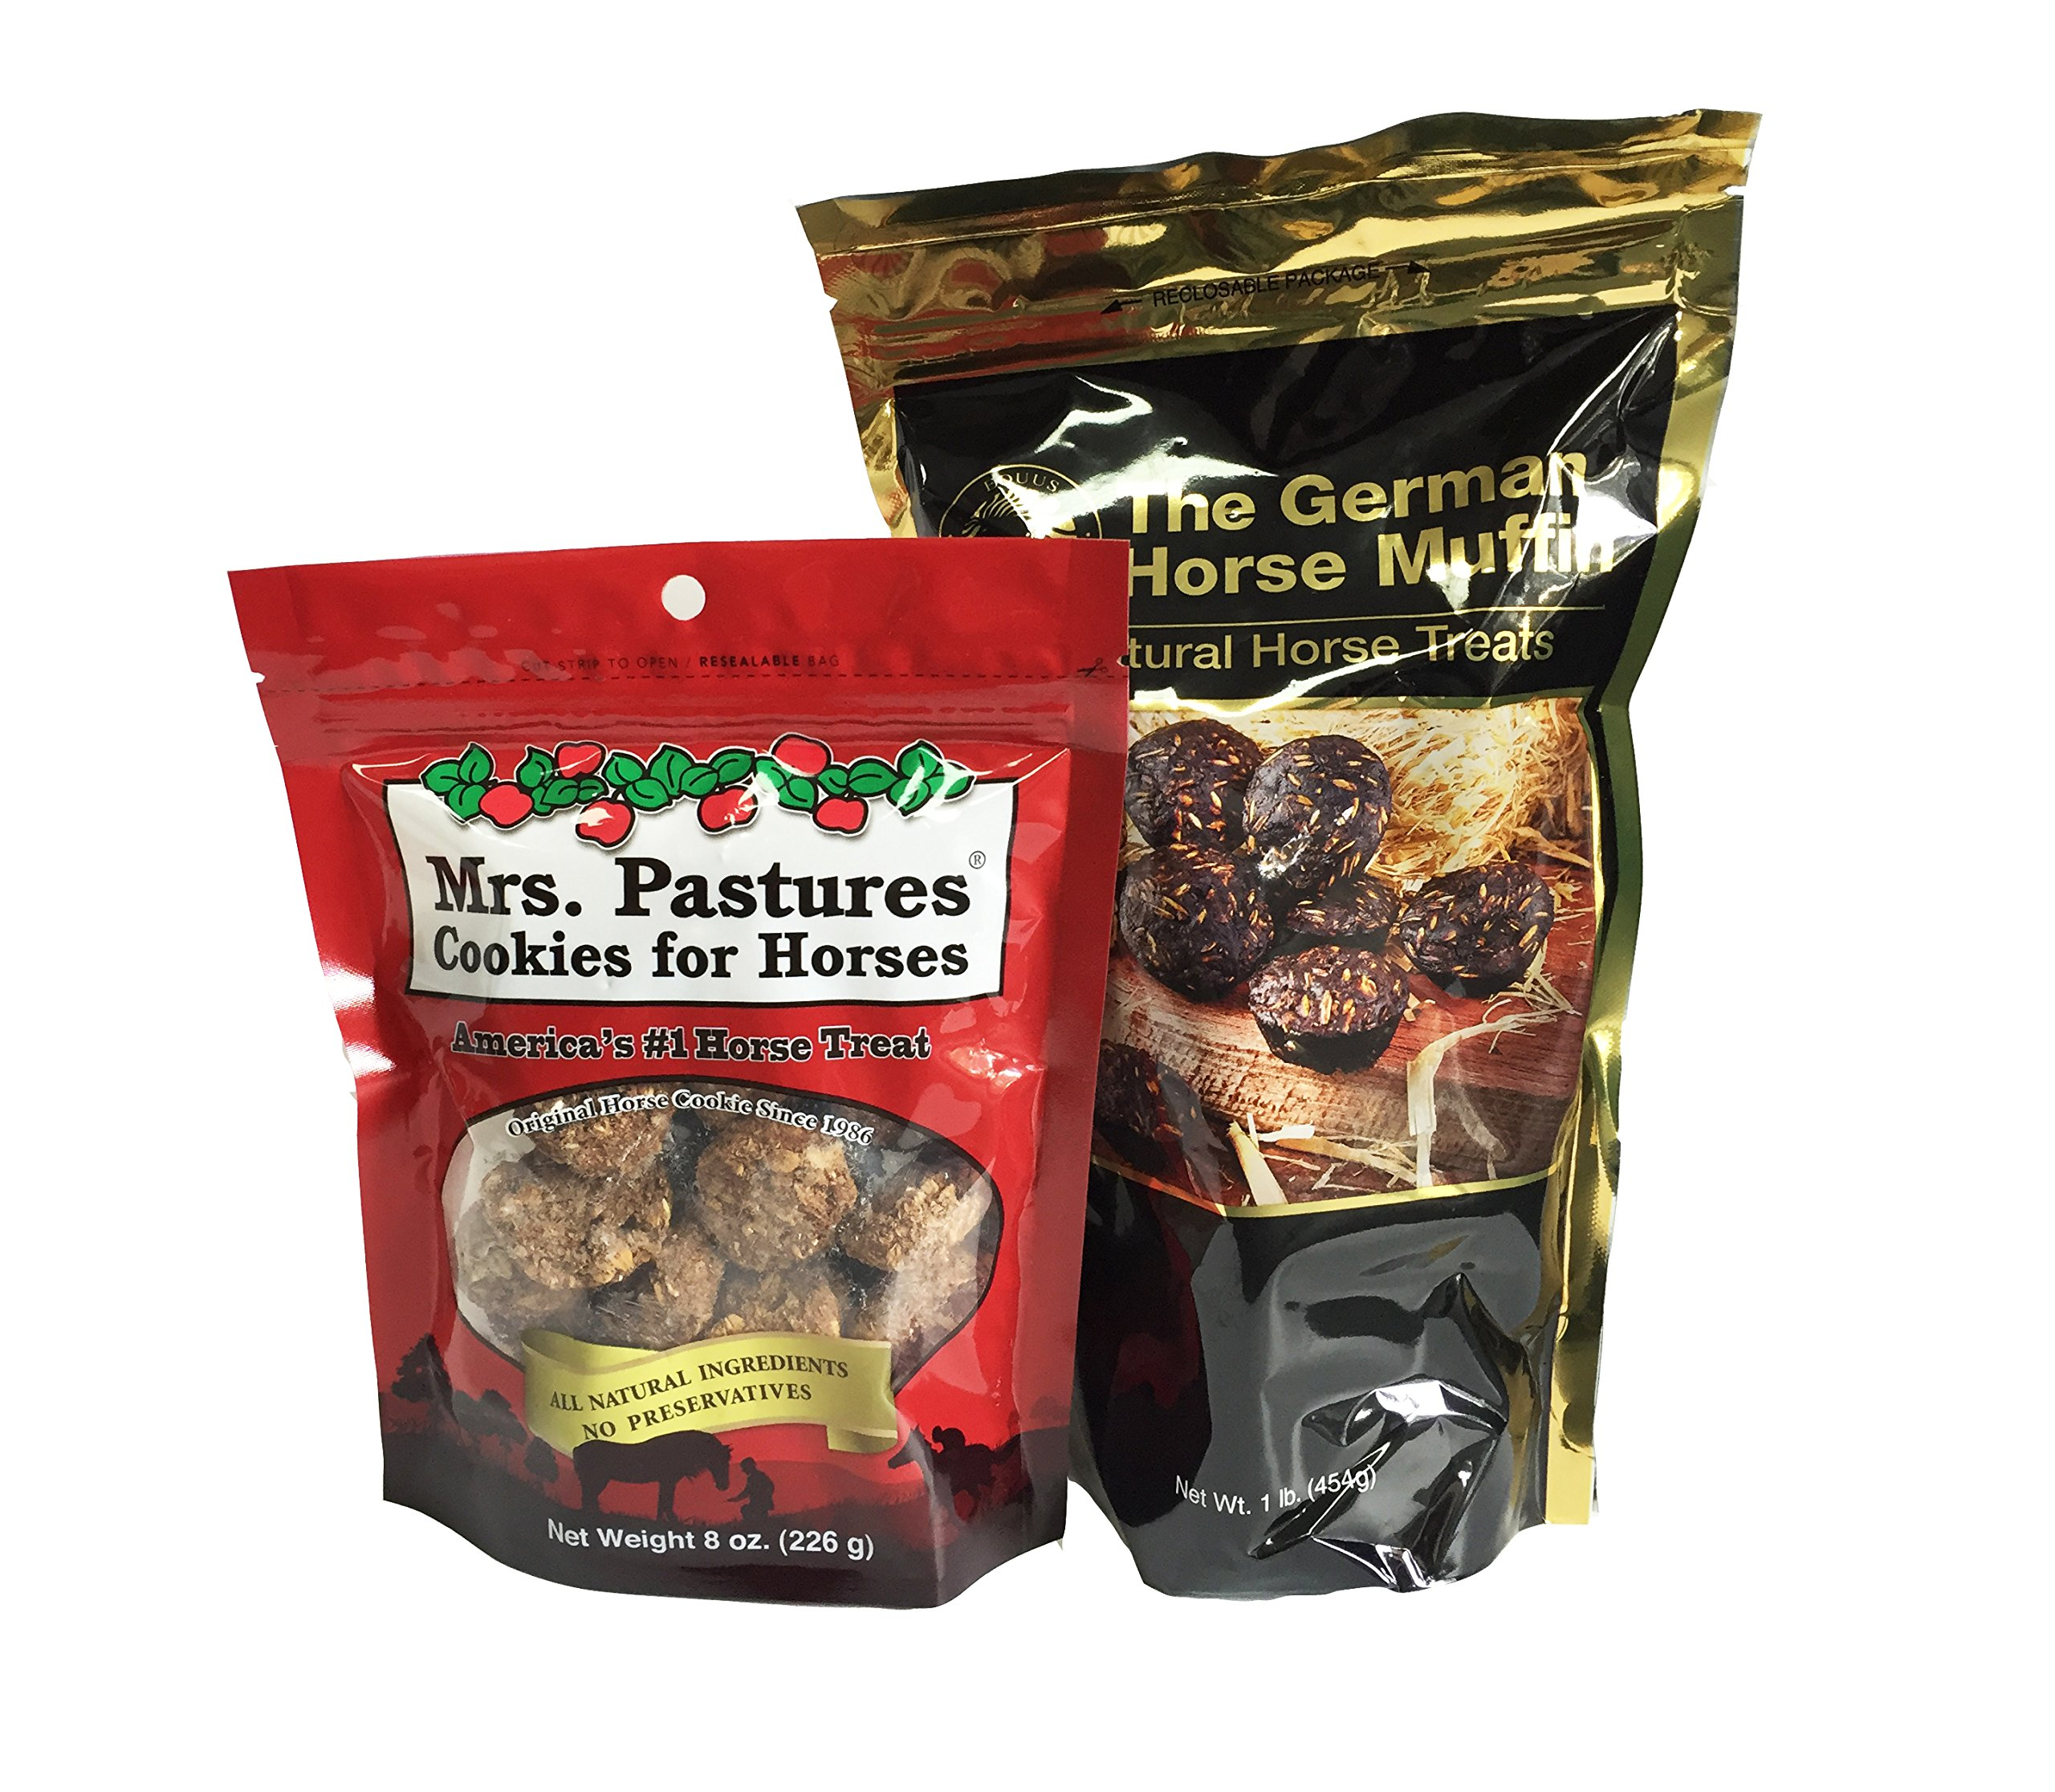 Equus Magnificus The German Horse Muffin and Mrs. Pastures Cookies for Horses Pack for Horse Owners